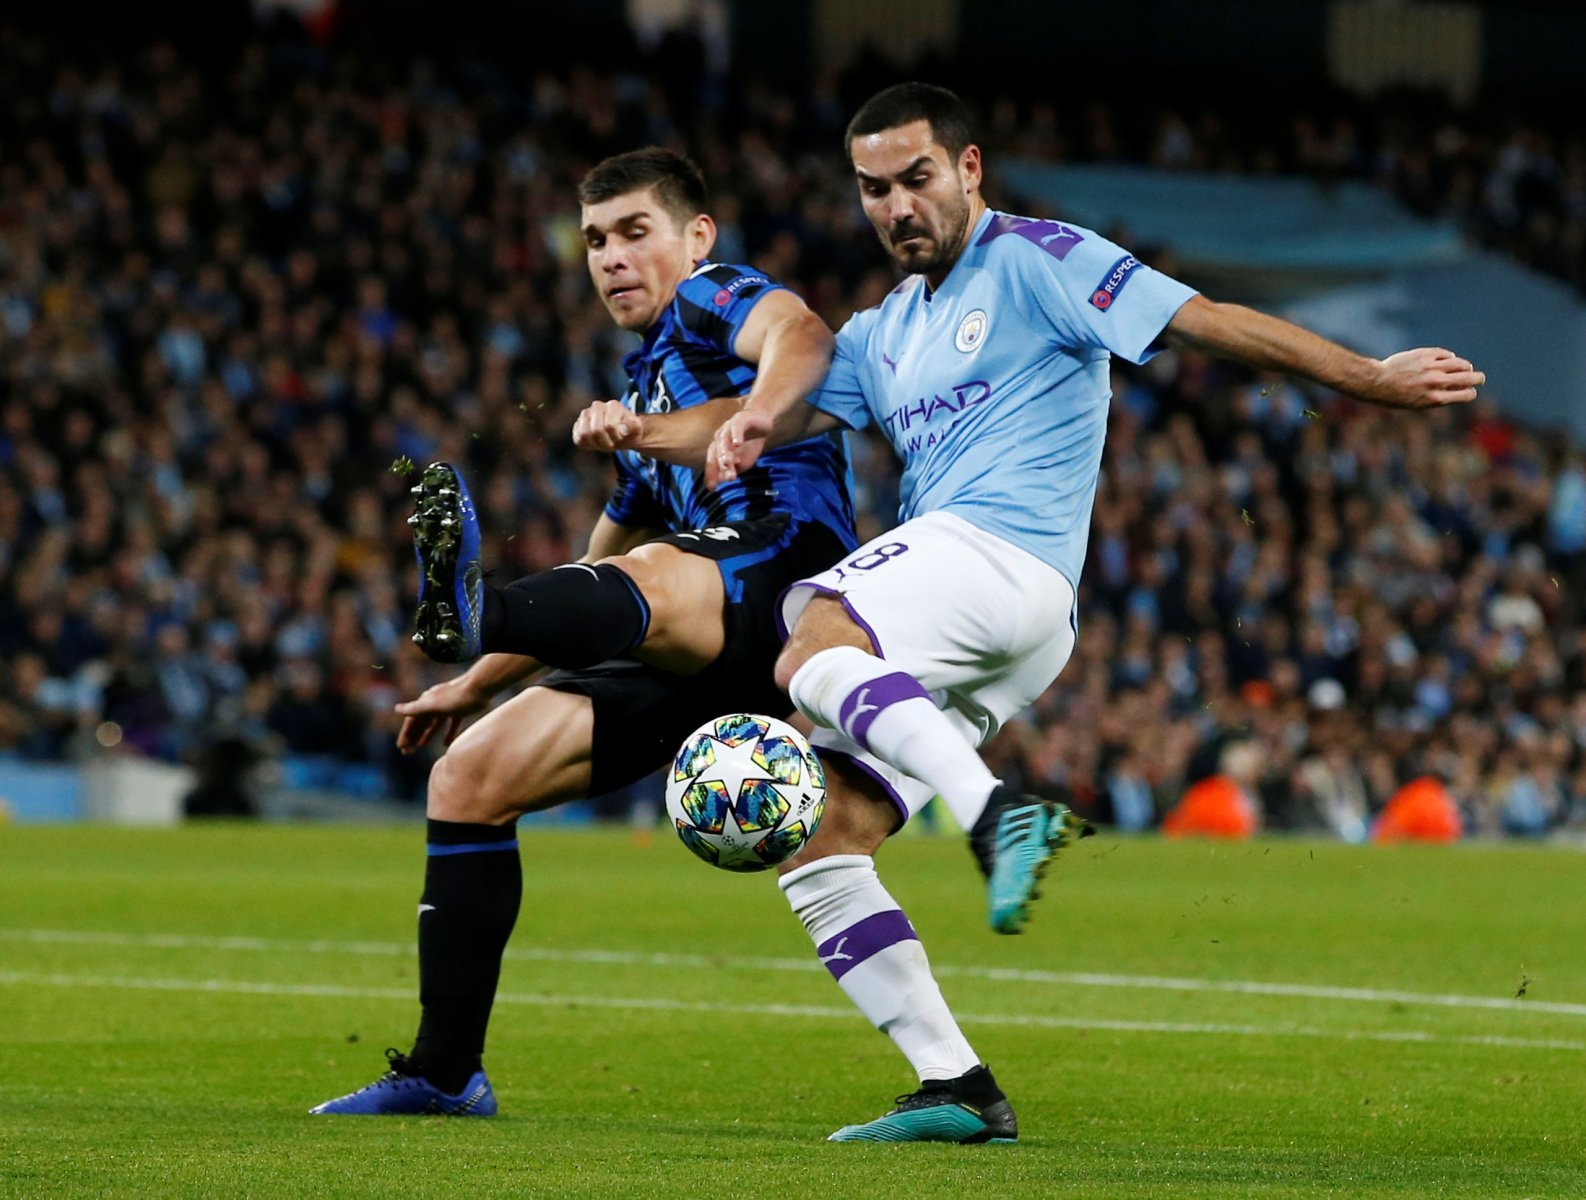 Unsung Hero: Manchester City's Ilkay Gundogan capped diligent display with superb assist